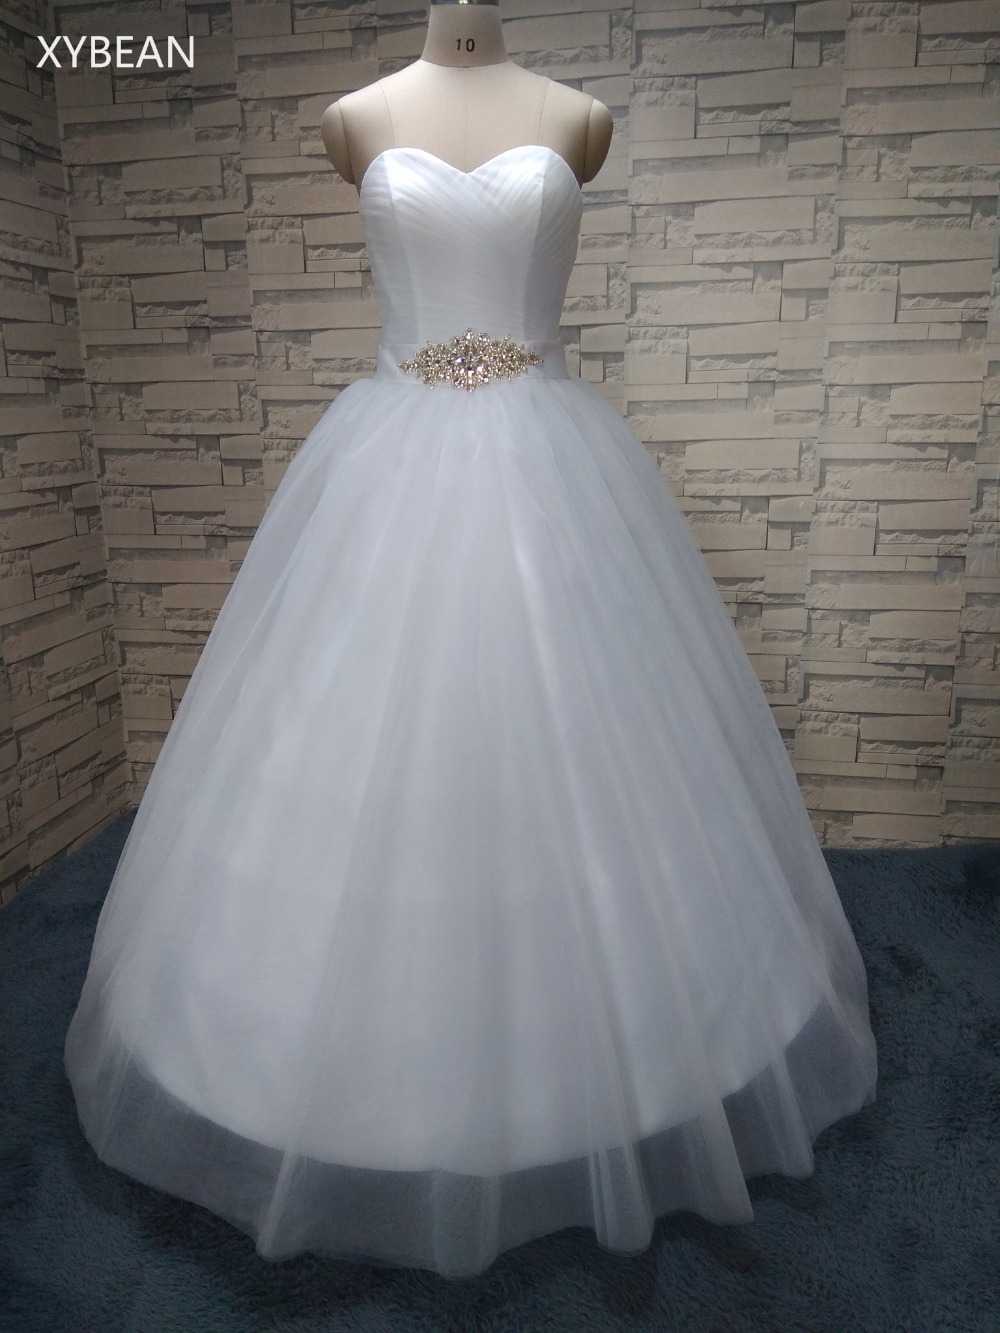 Free Shipping 2017 New Arrival Bridal White/Ivory Wedding Dress Bridal Gown Custom Size 4 6 8 10 12 14 16 18